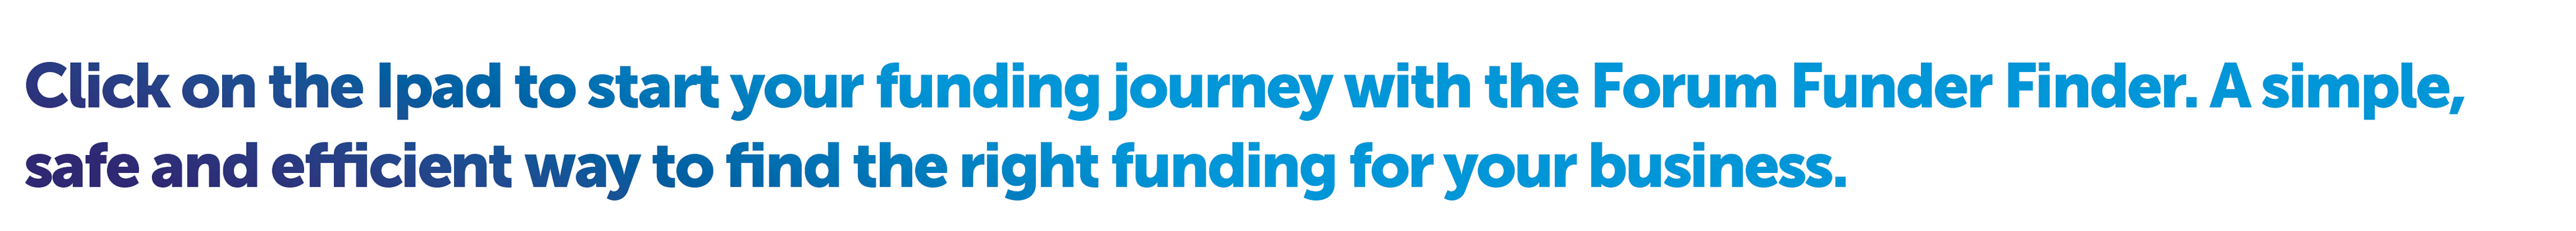 Start your Journey with Forum Funder Finder